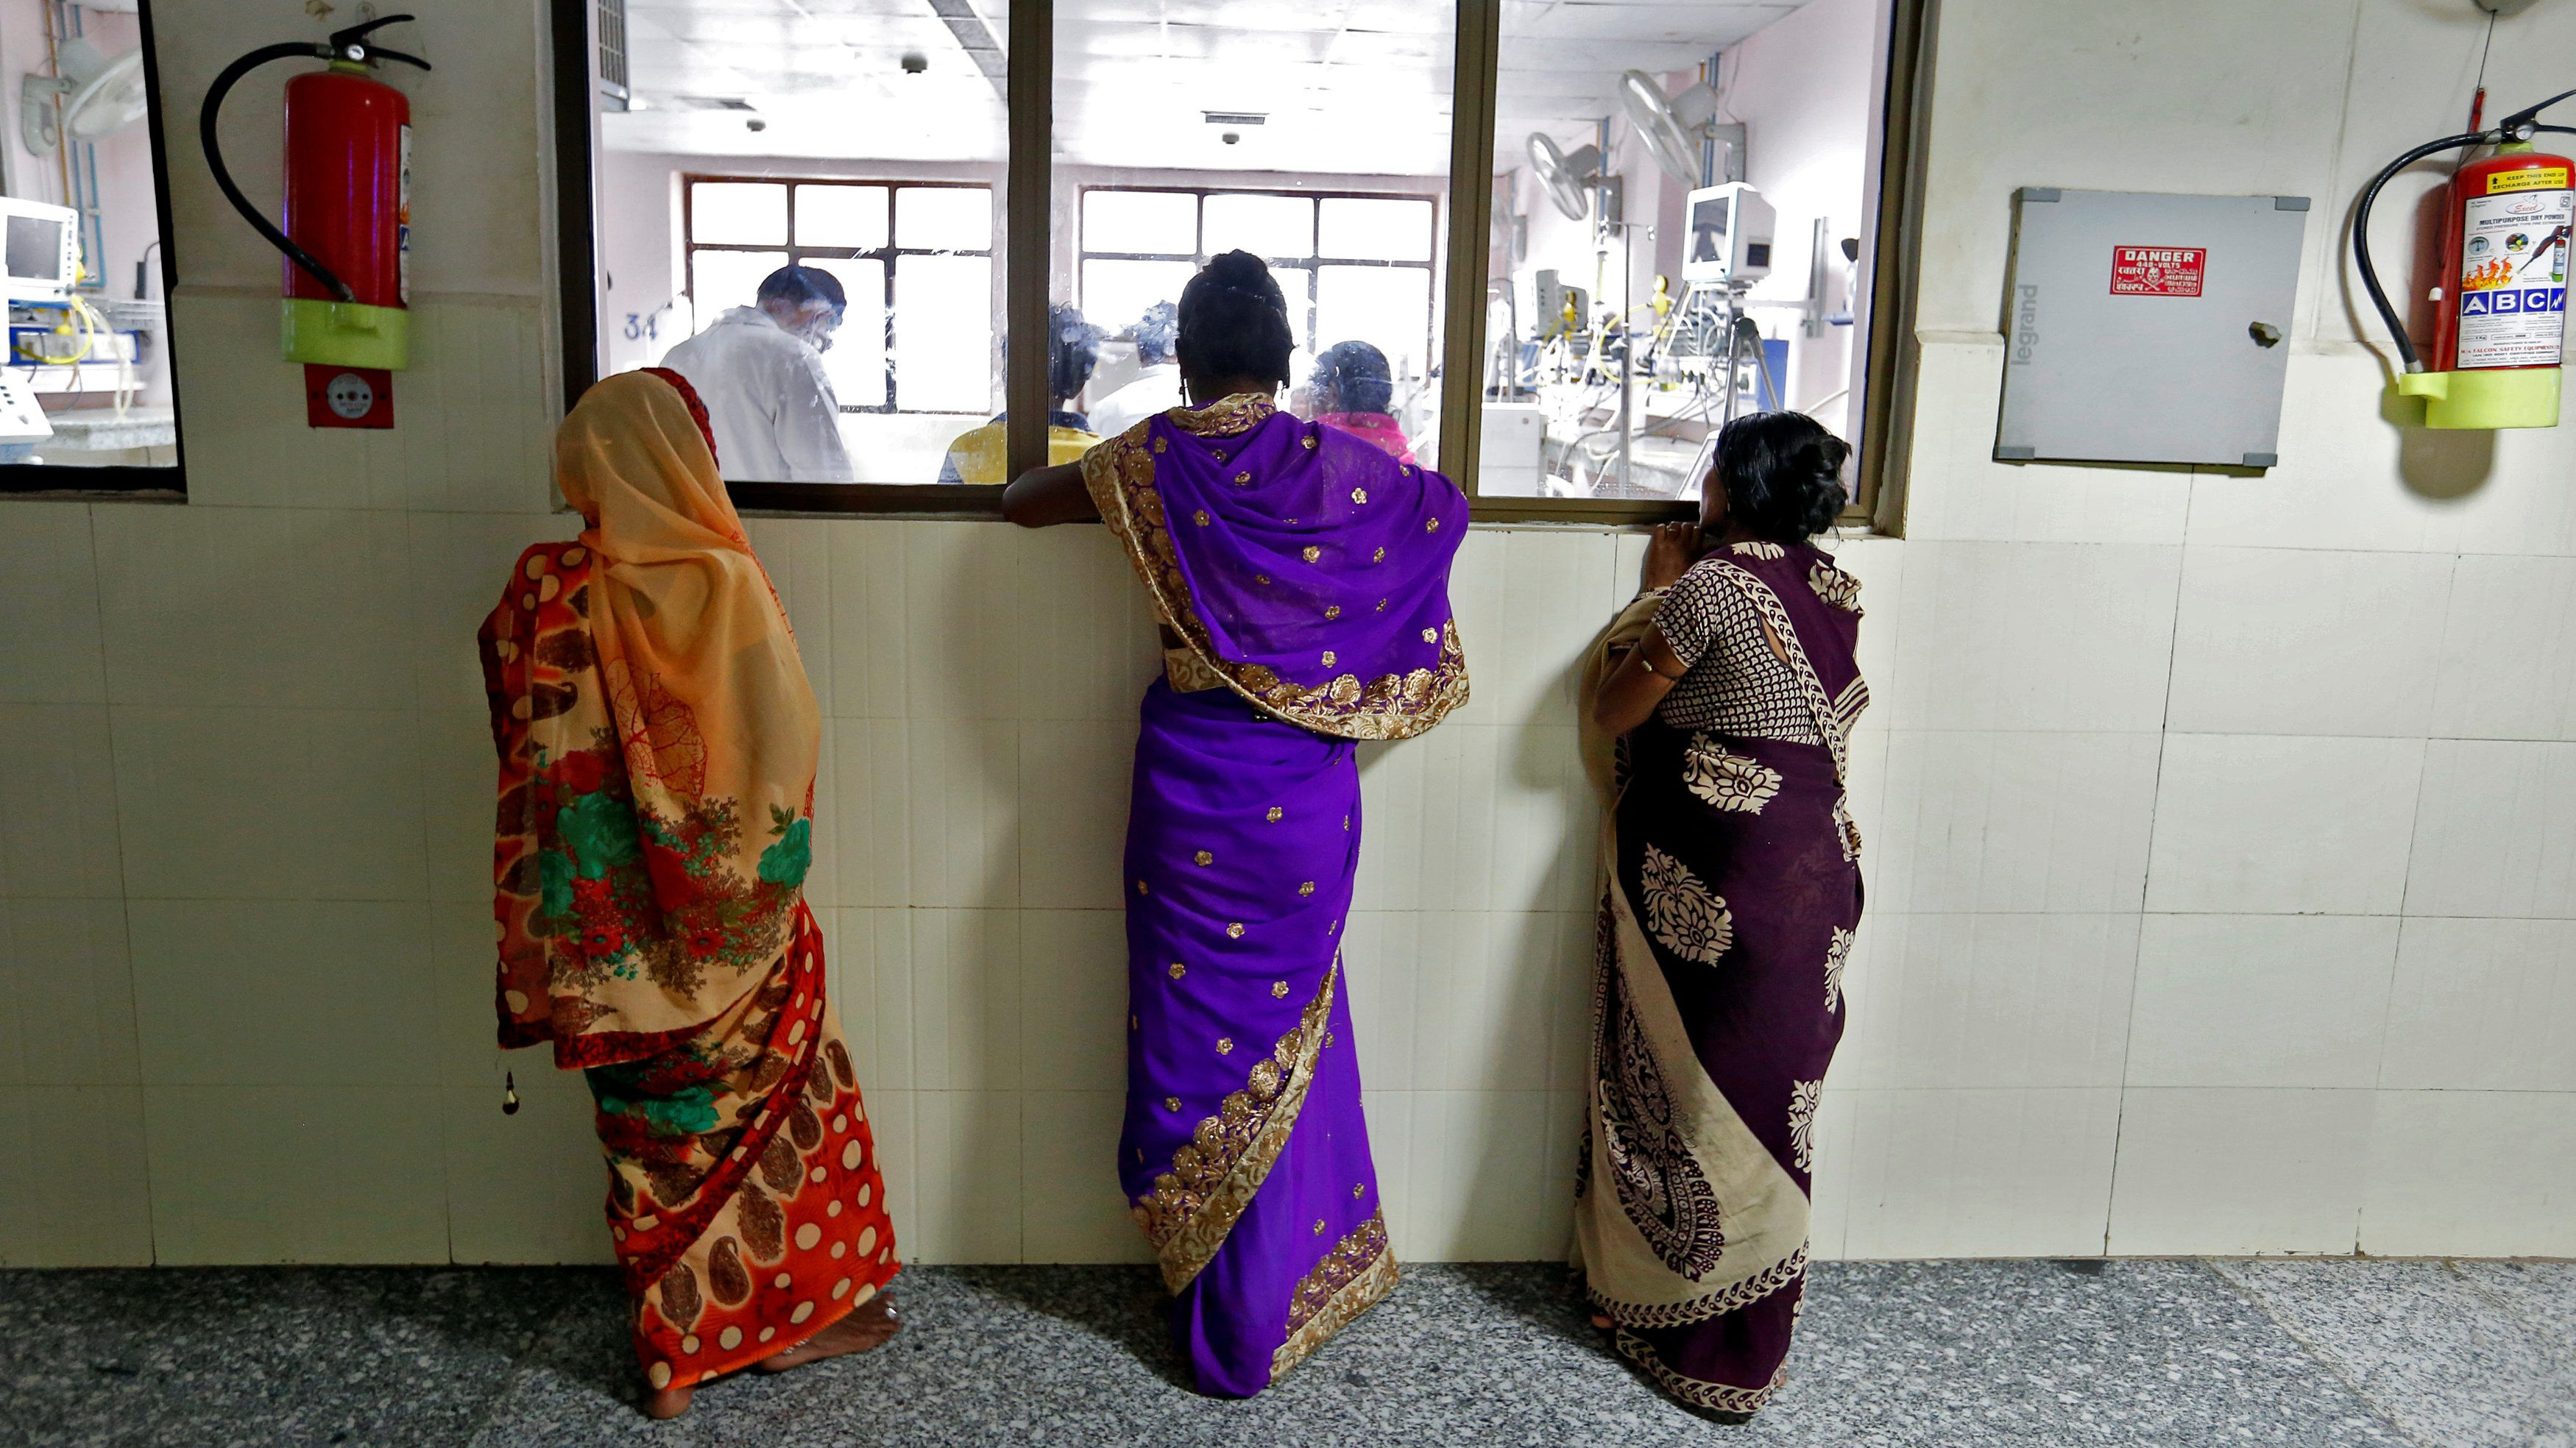 The chasm in India's healthcare system forces many people to turn to crowdfunding